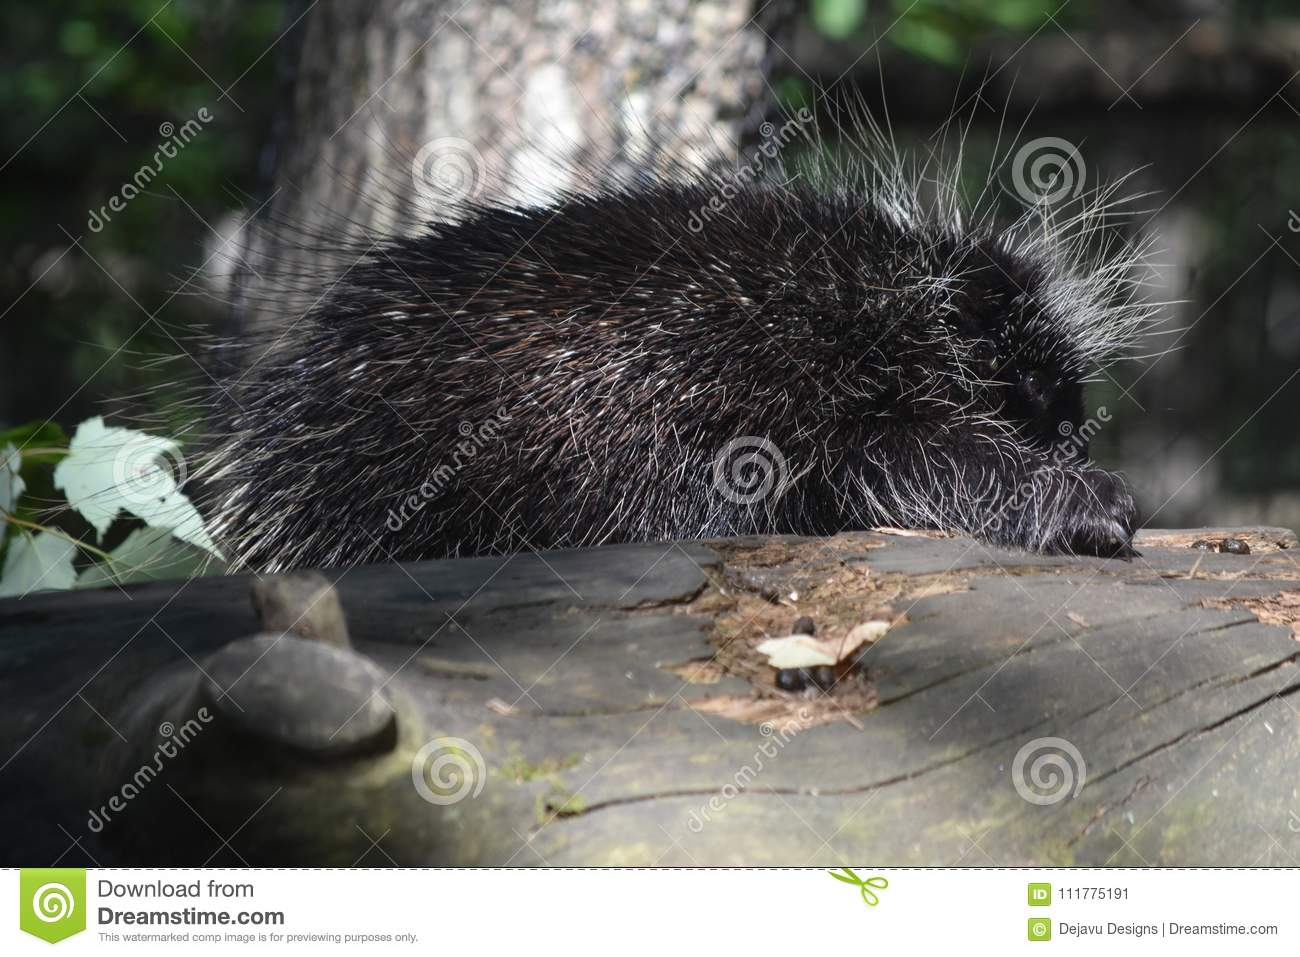 Large wild porcupine showing off its claws digging into the log